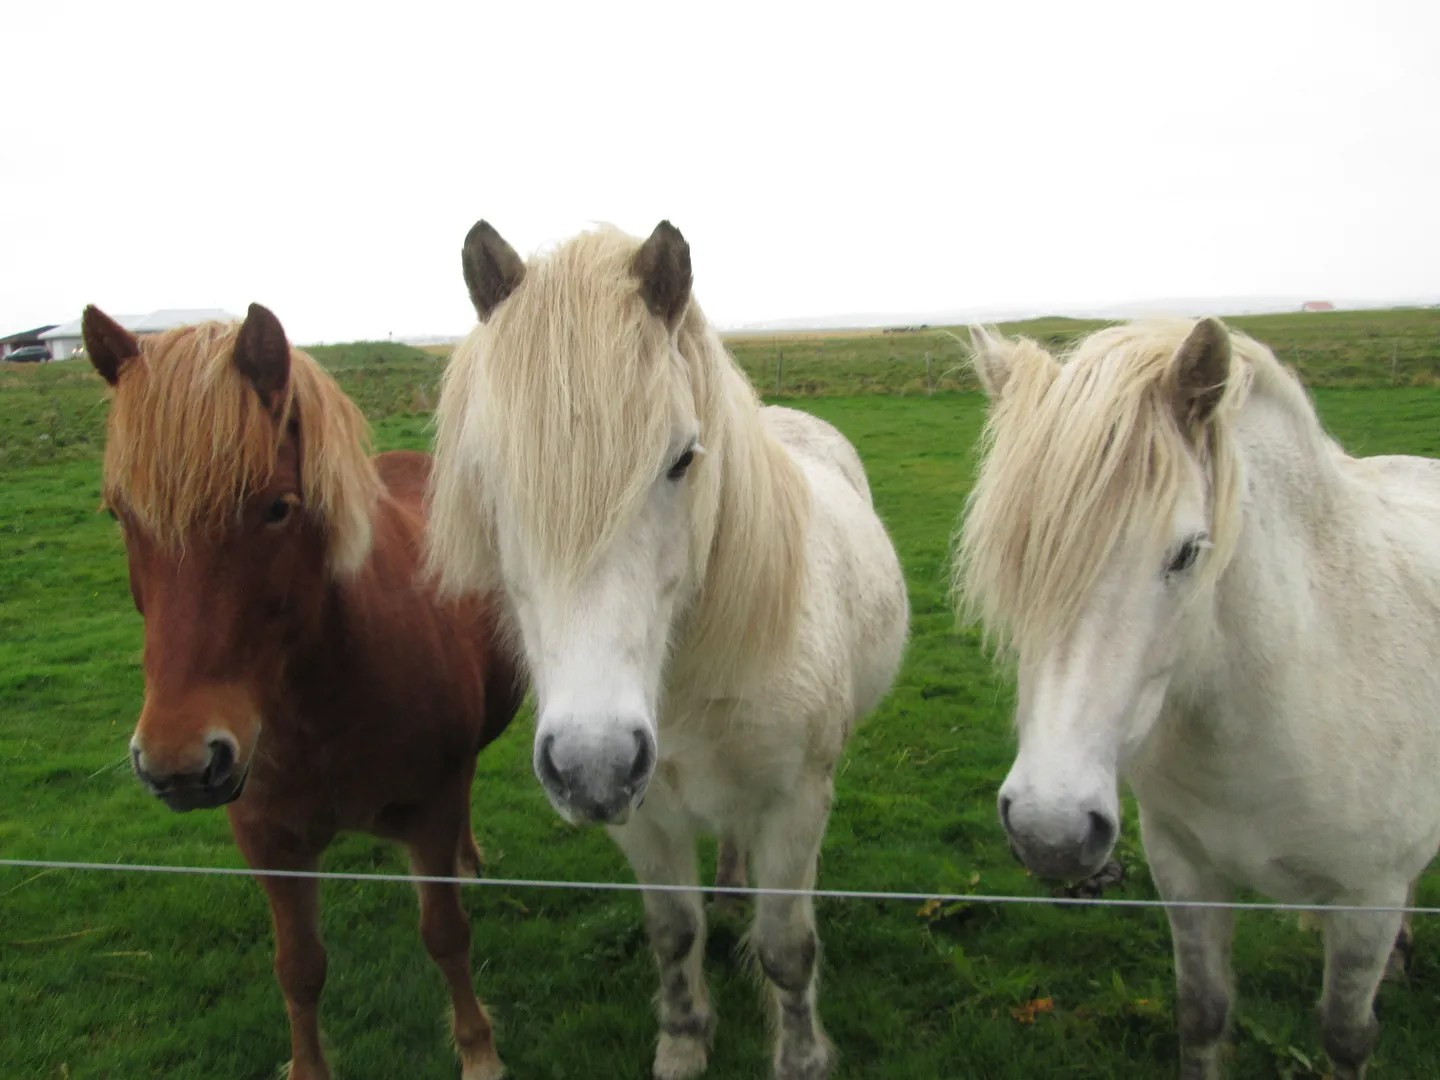 three icelandic horses, one brown and two white